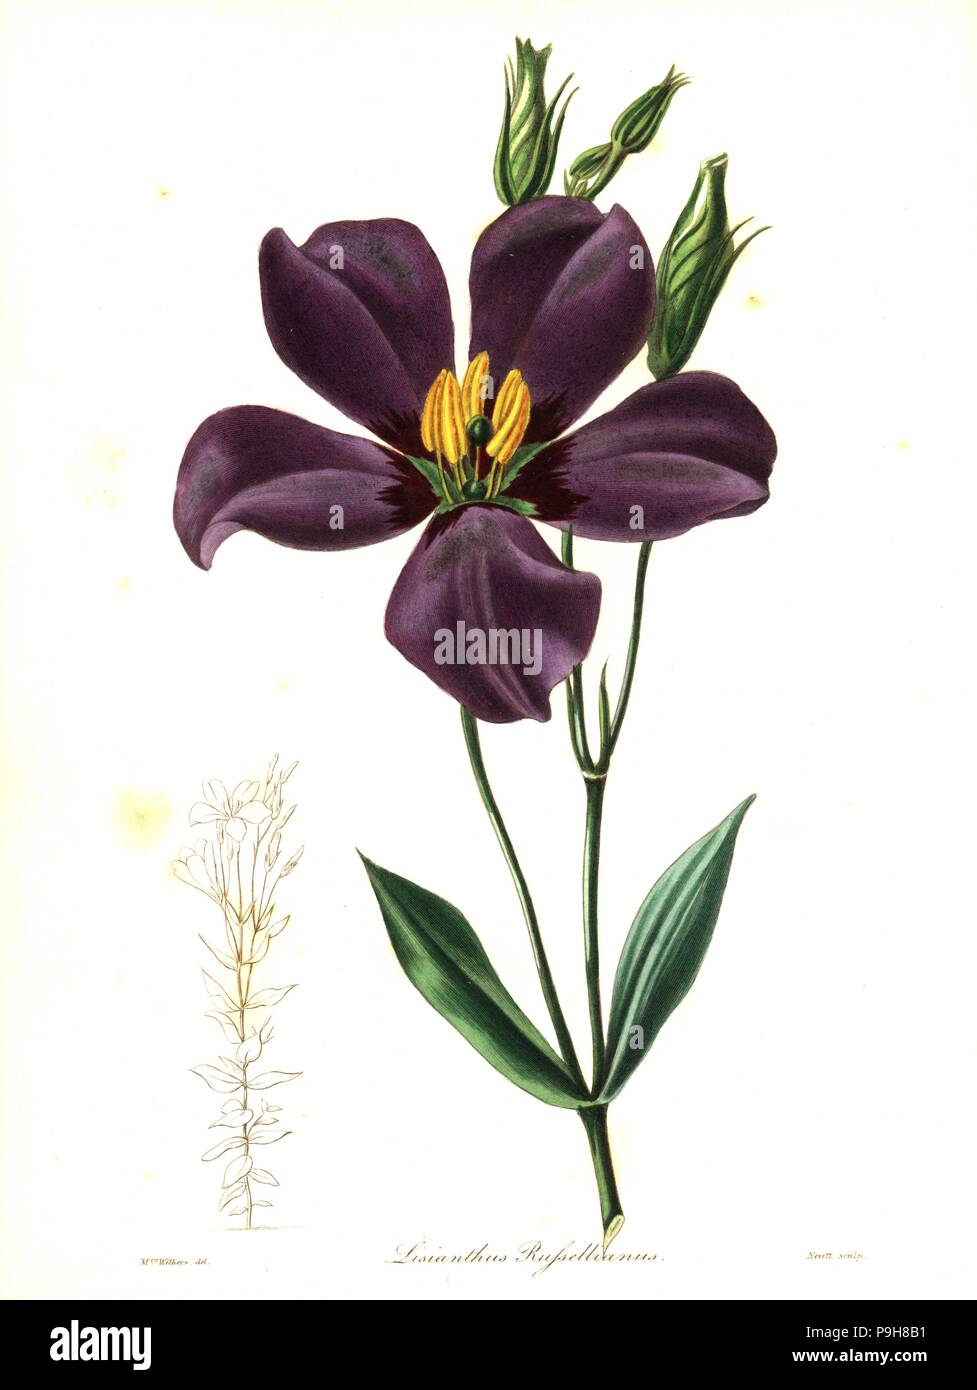 Texas bluebells, Eustoma grandiflorum (Duke of Bedford's lisianthus, Lisianthus russellianus). Handcoloured copperplate engraving by S. Nevitt after a botanical illustration by Mrs Augusta Withers from Benjamin Maund and the Rev. John Stevens Henslow's The Botanist, London, 1836. - Stock Image